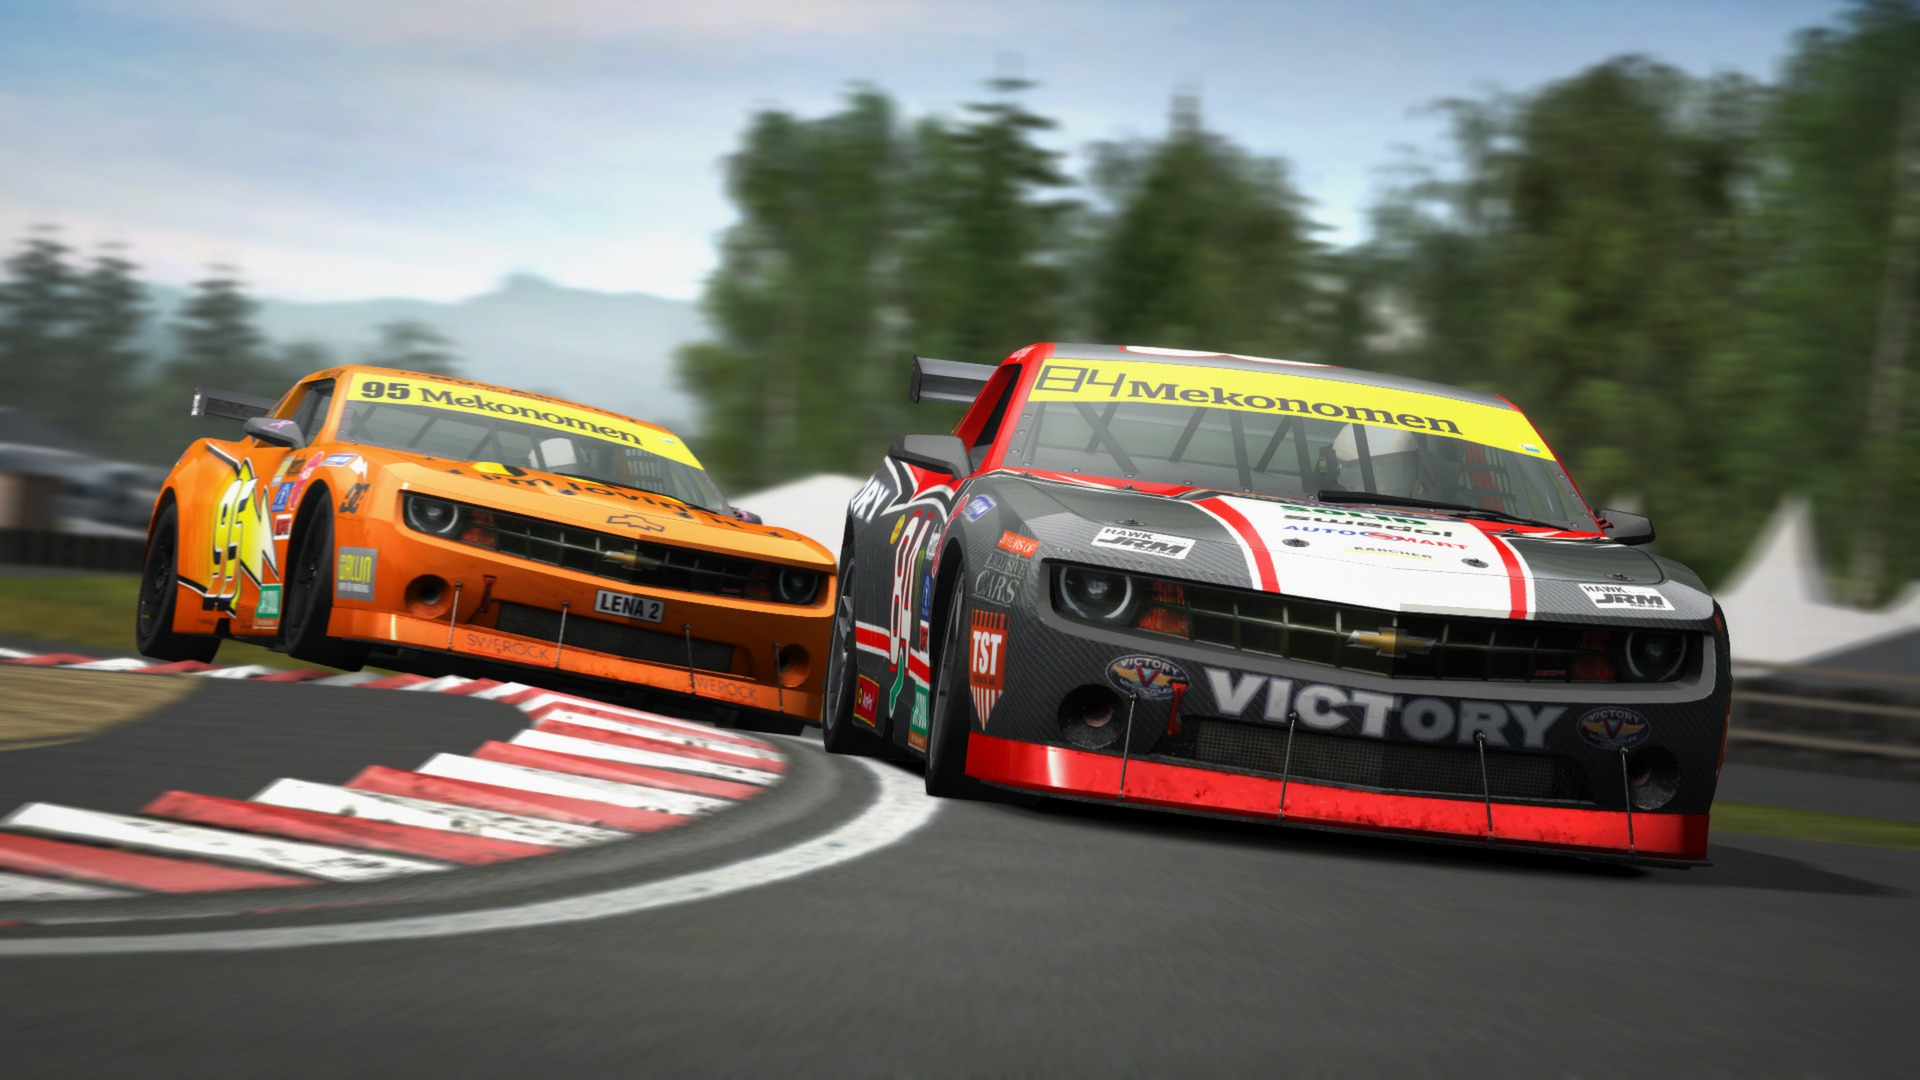 Download RACE Injection Full PC Game